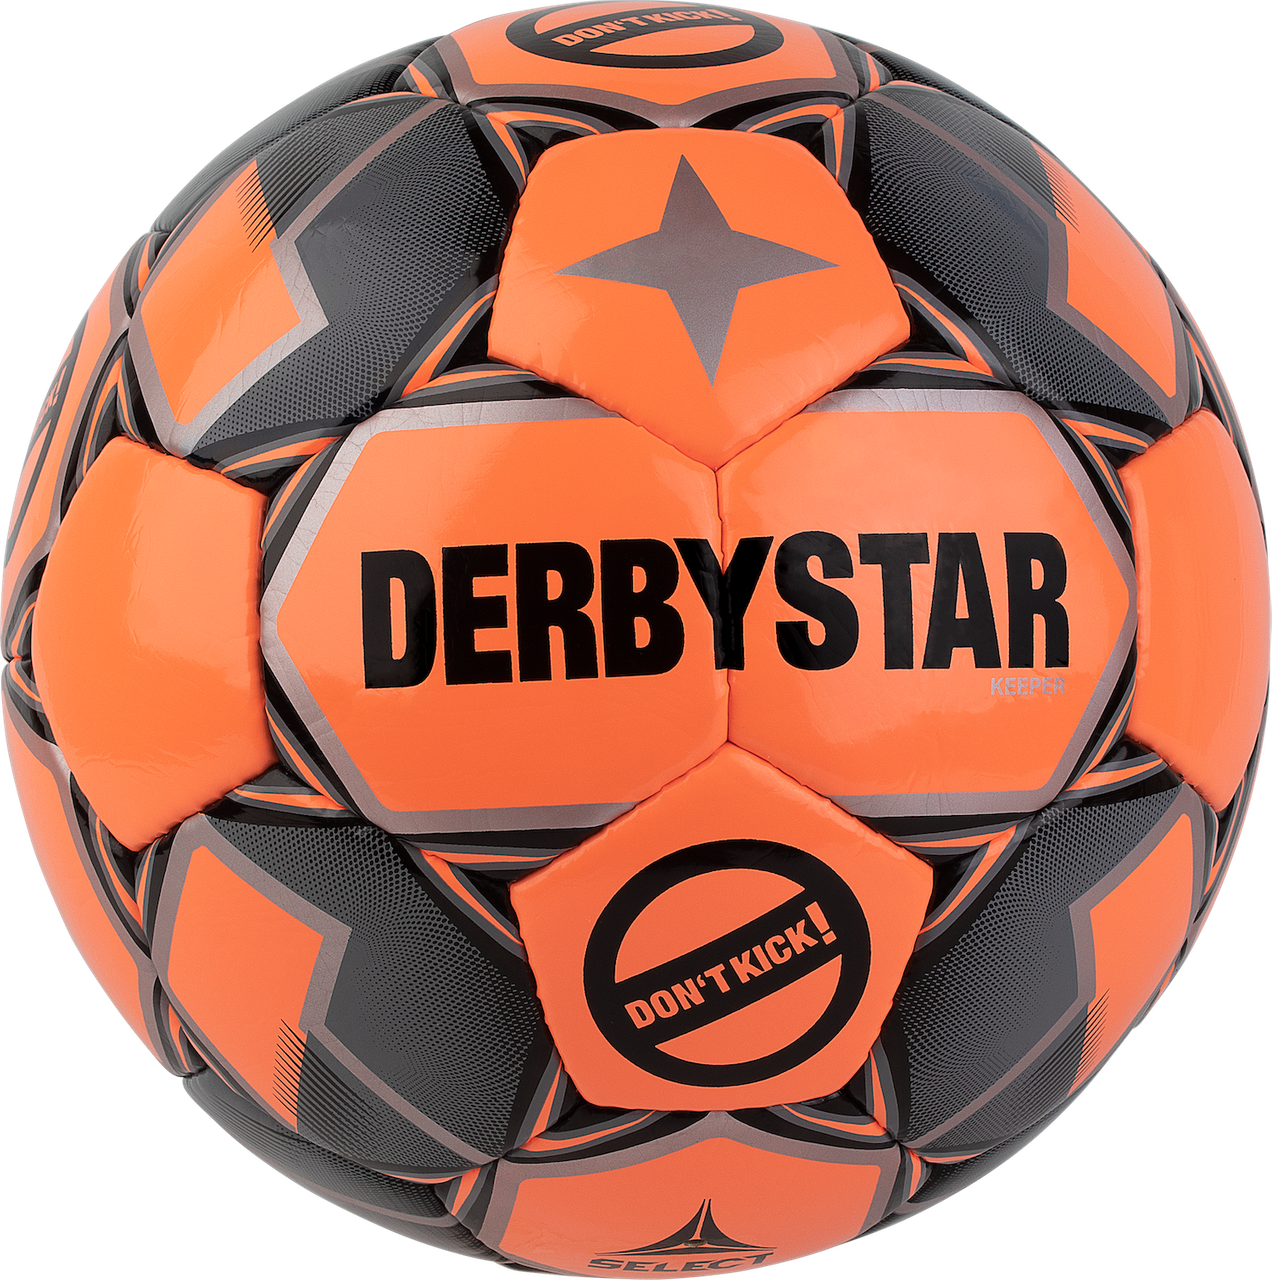 DERBYSTAR Training ball for goalkeepers - KEEPER